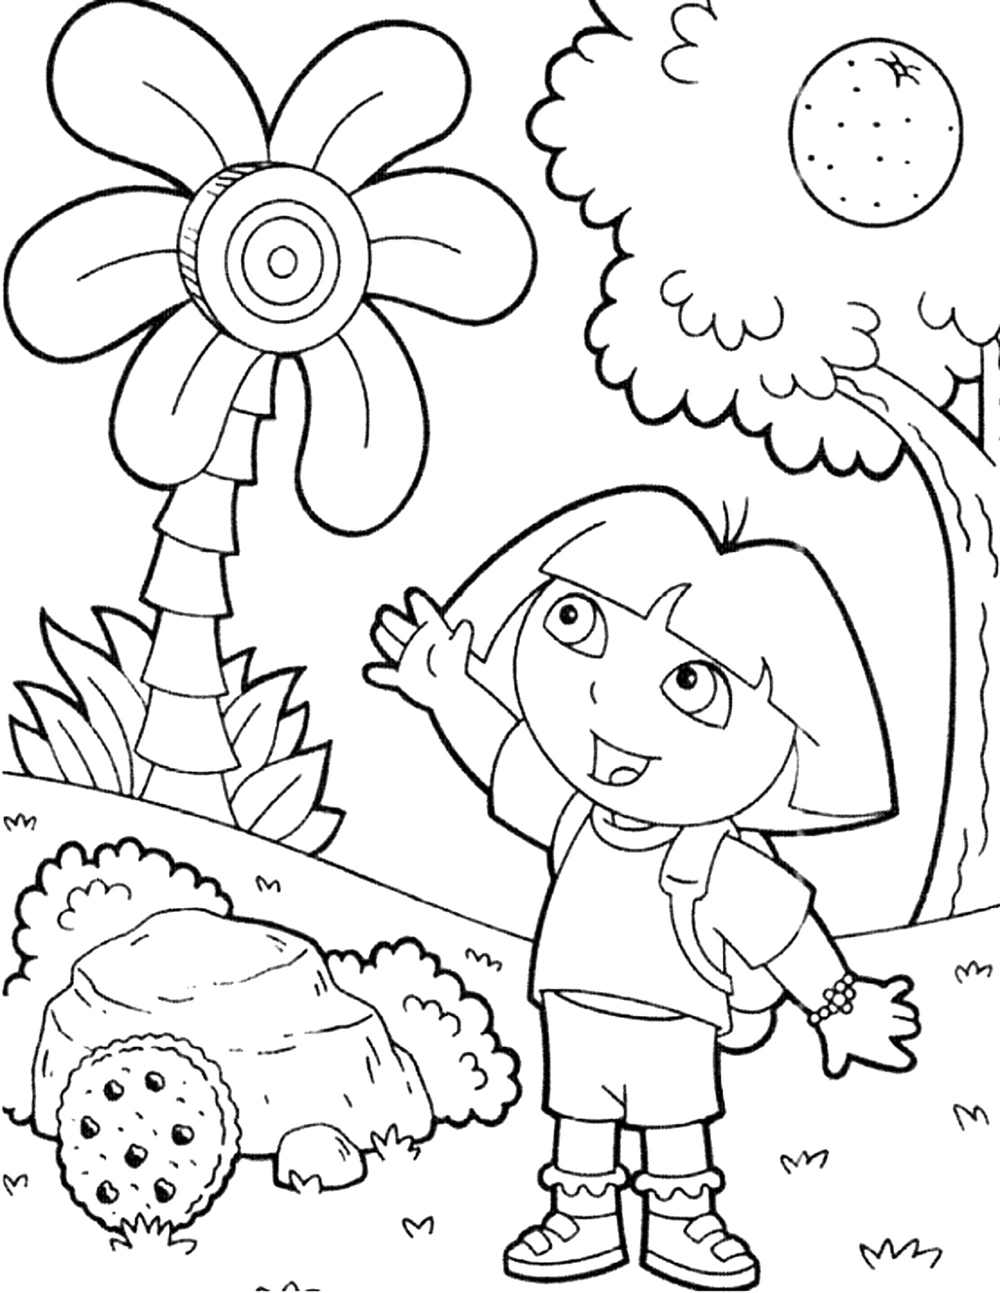 dora the explorer printable coloring pages print download dora coloring pages to learn new things printable pages coloring explorer the dora